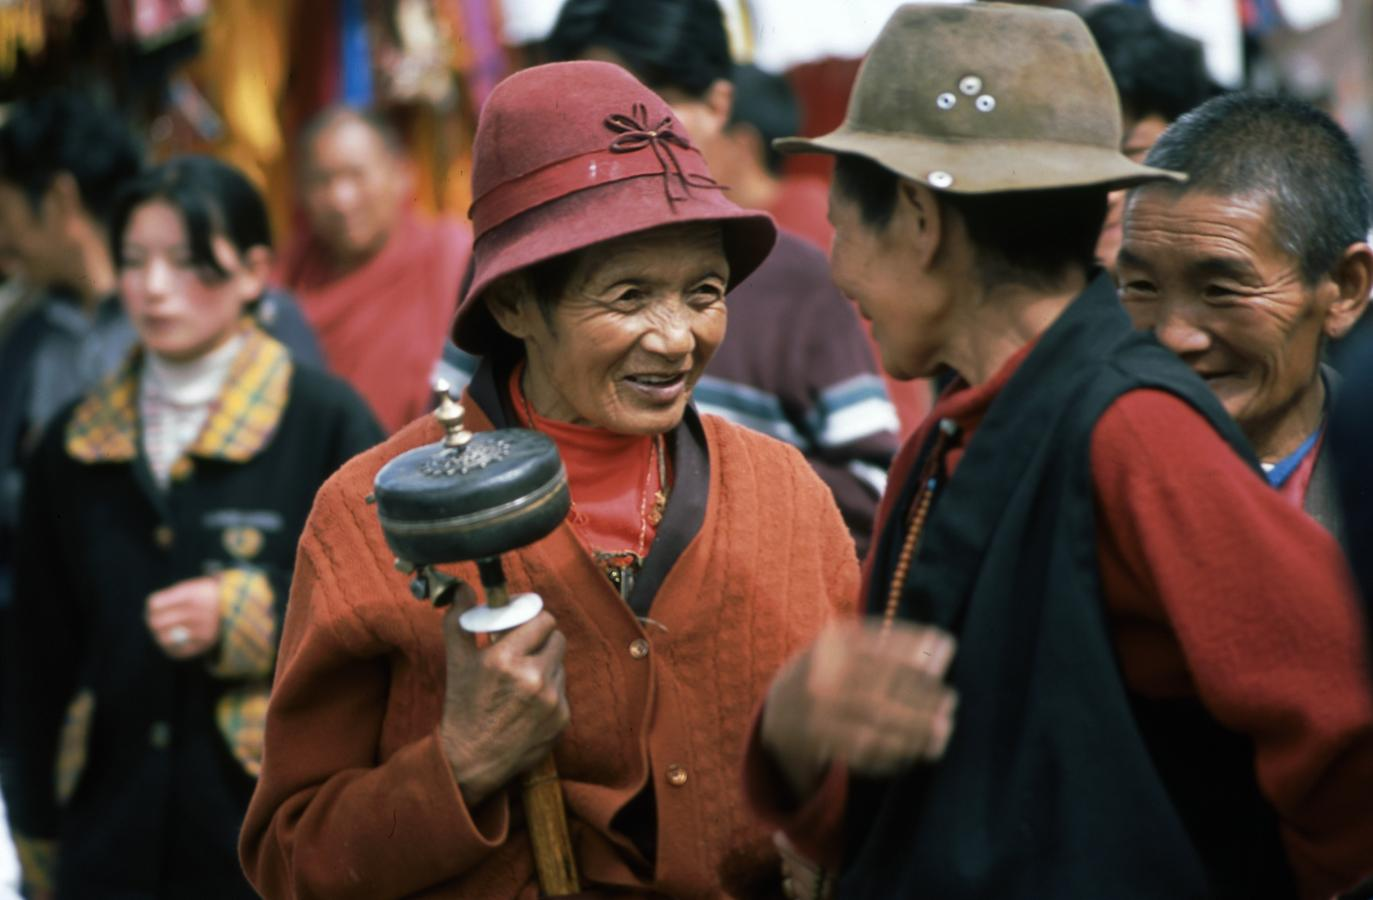 outside-the-jokhang-temple-lhasa-tibet-2000